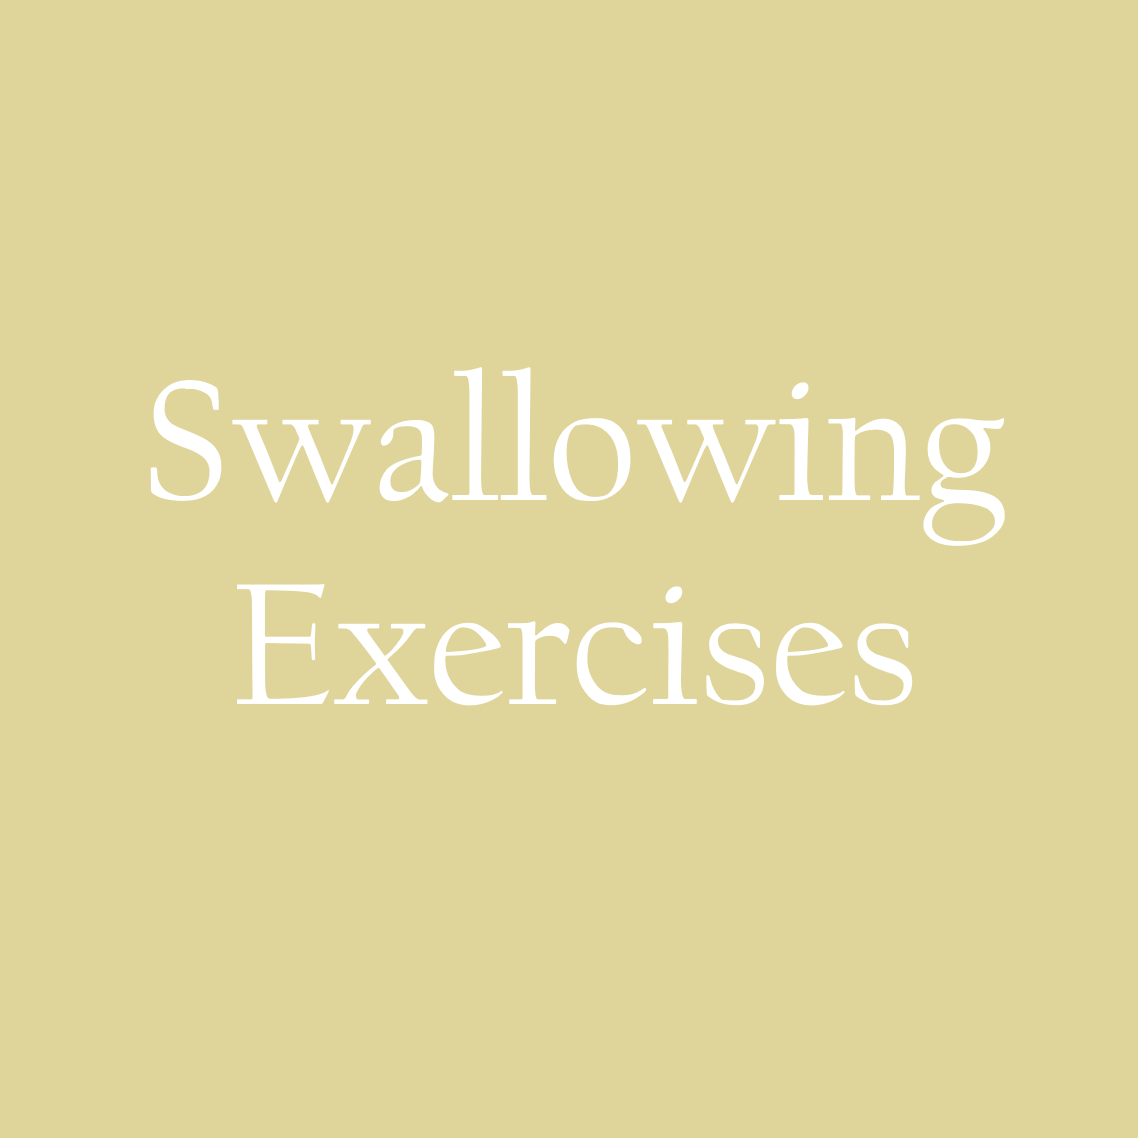 exercise_swallowing.png